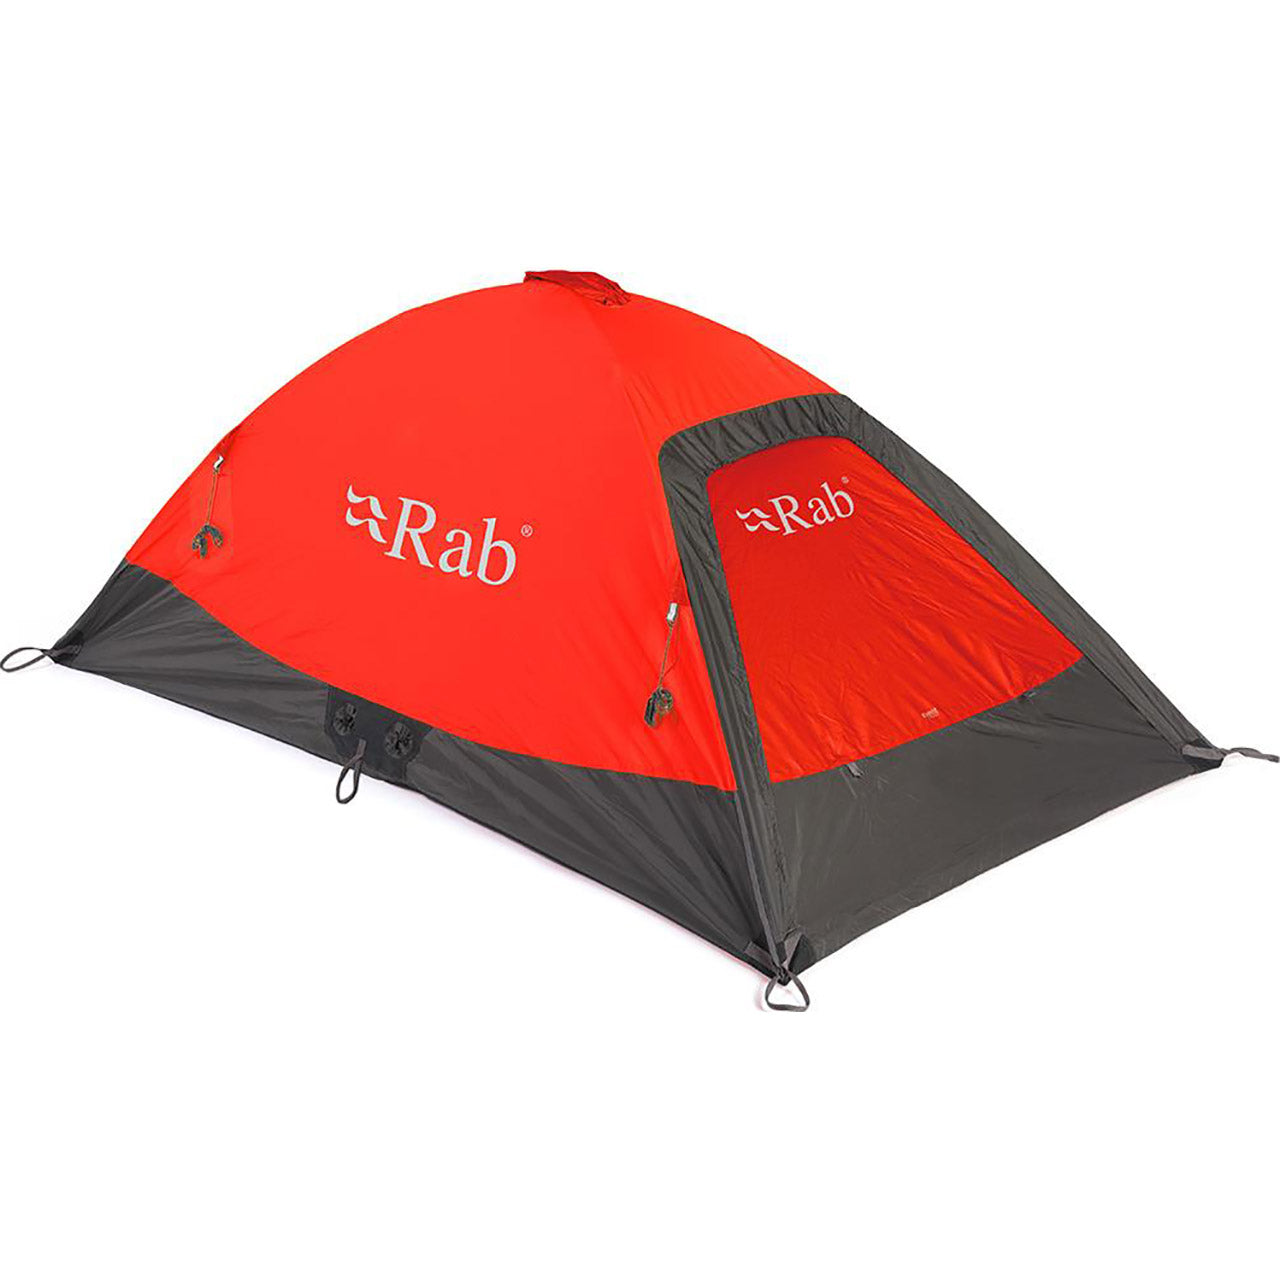 Rab Latok Summit 2-Person, 4-Season Mountaineering Tent